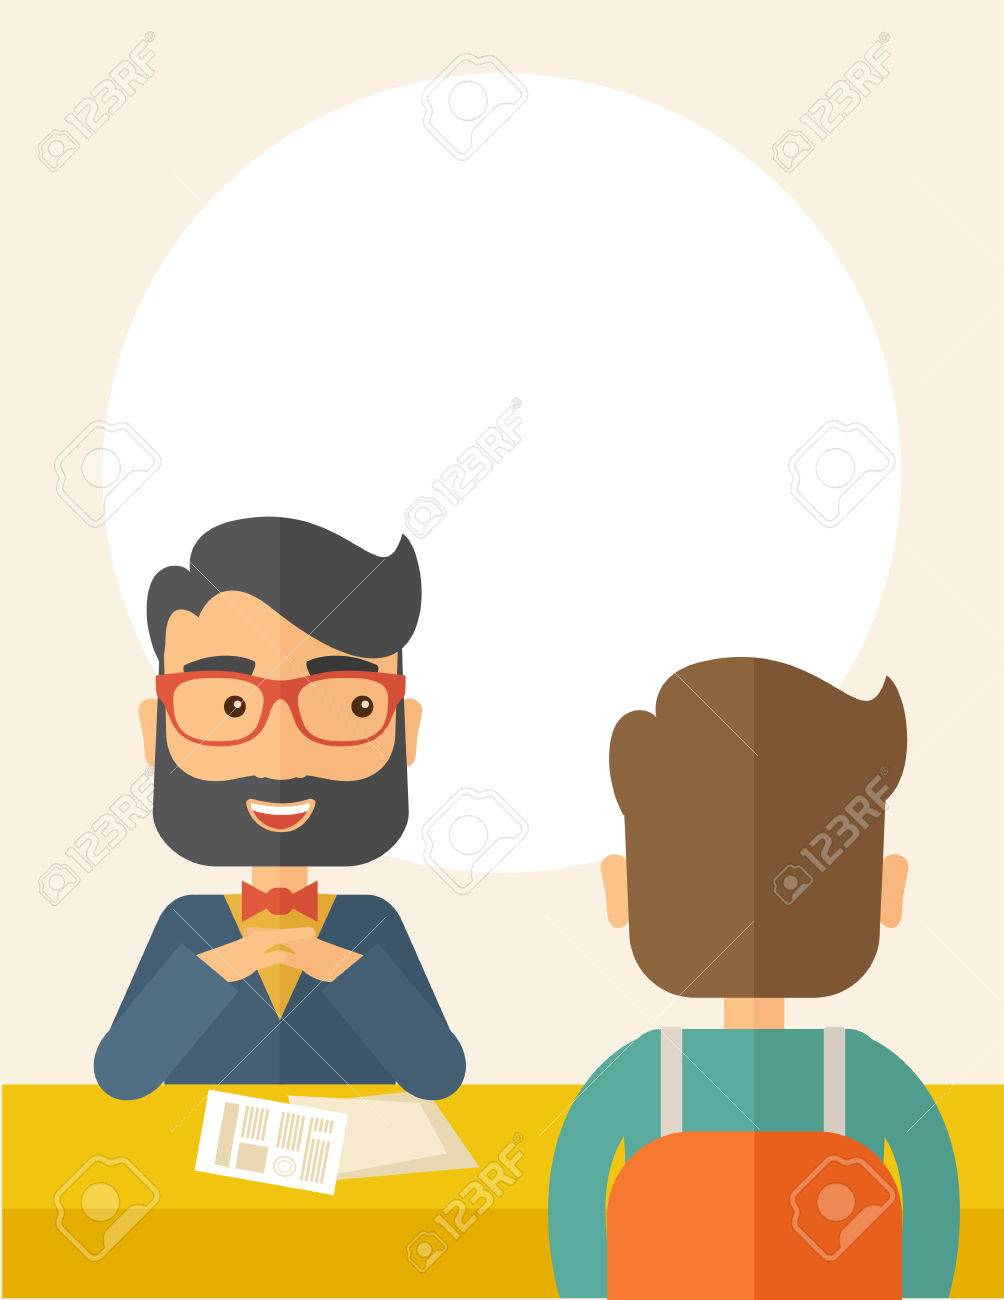 A Smiling Caucasian Human Resource Manager With Beard Interviewed